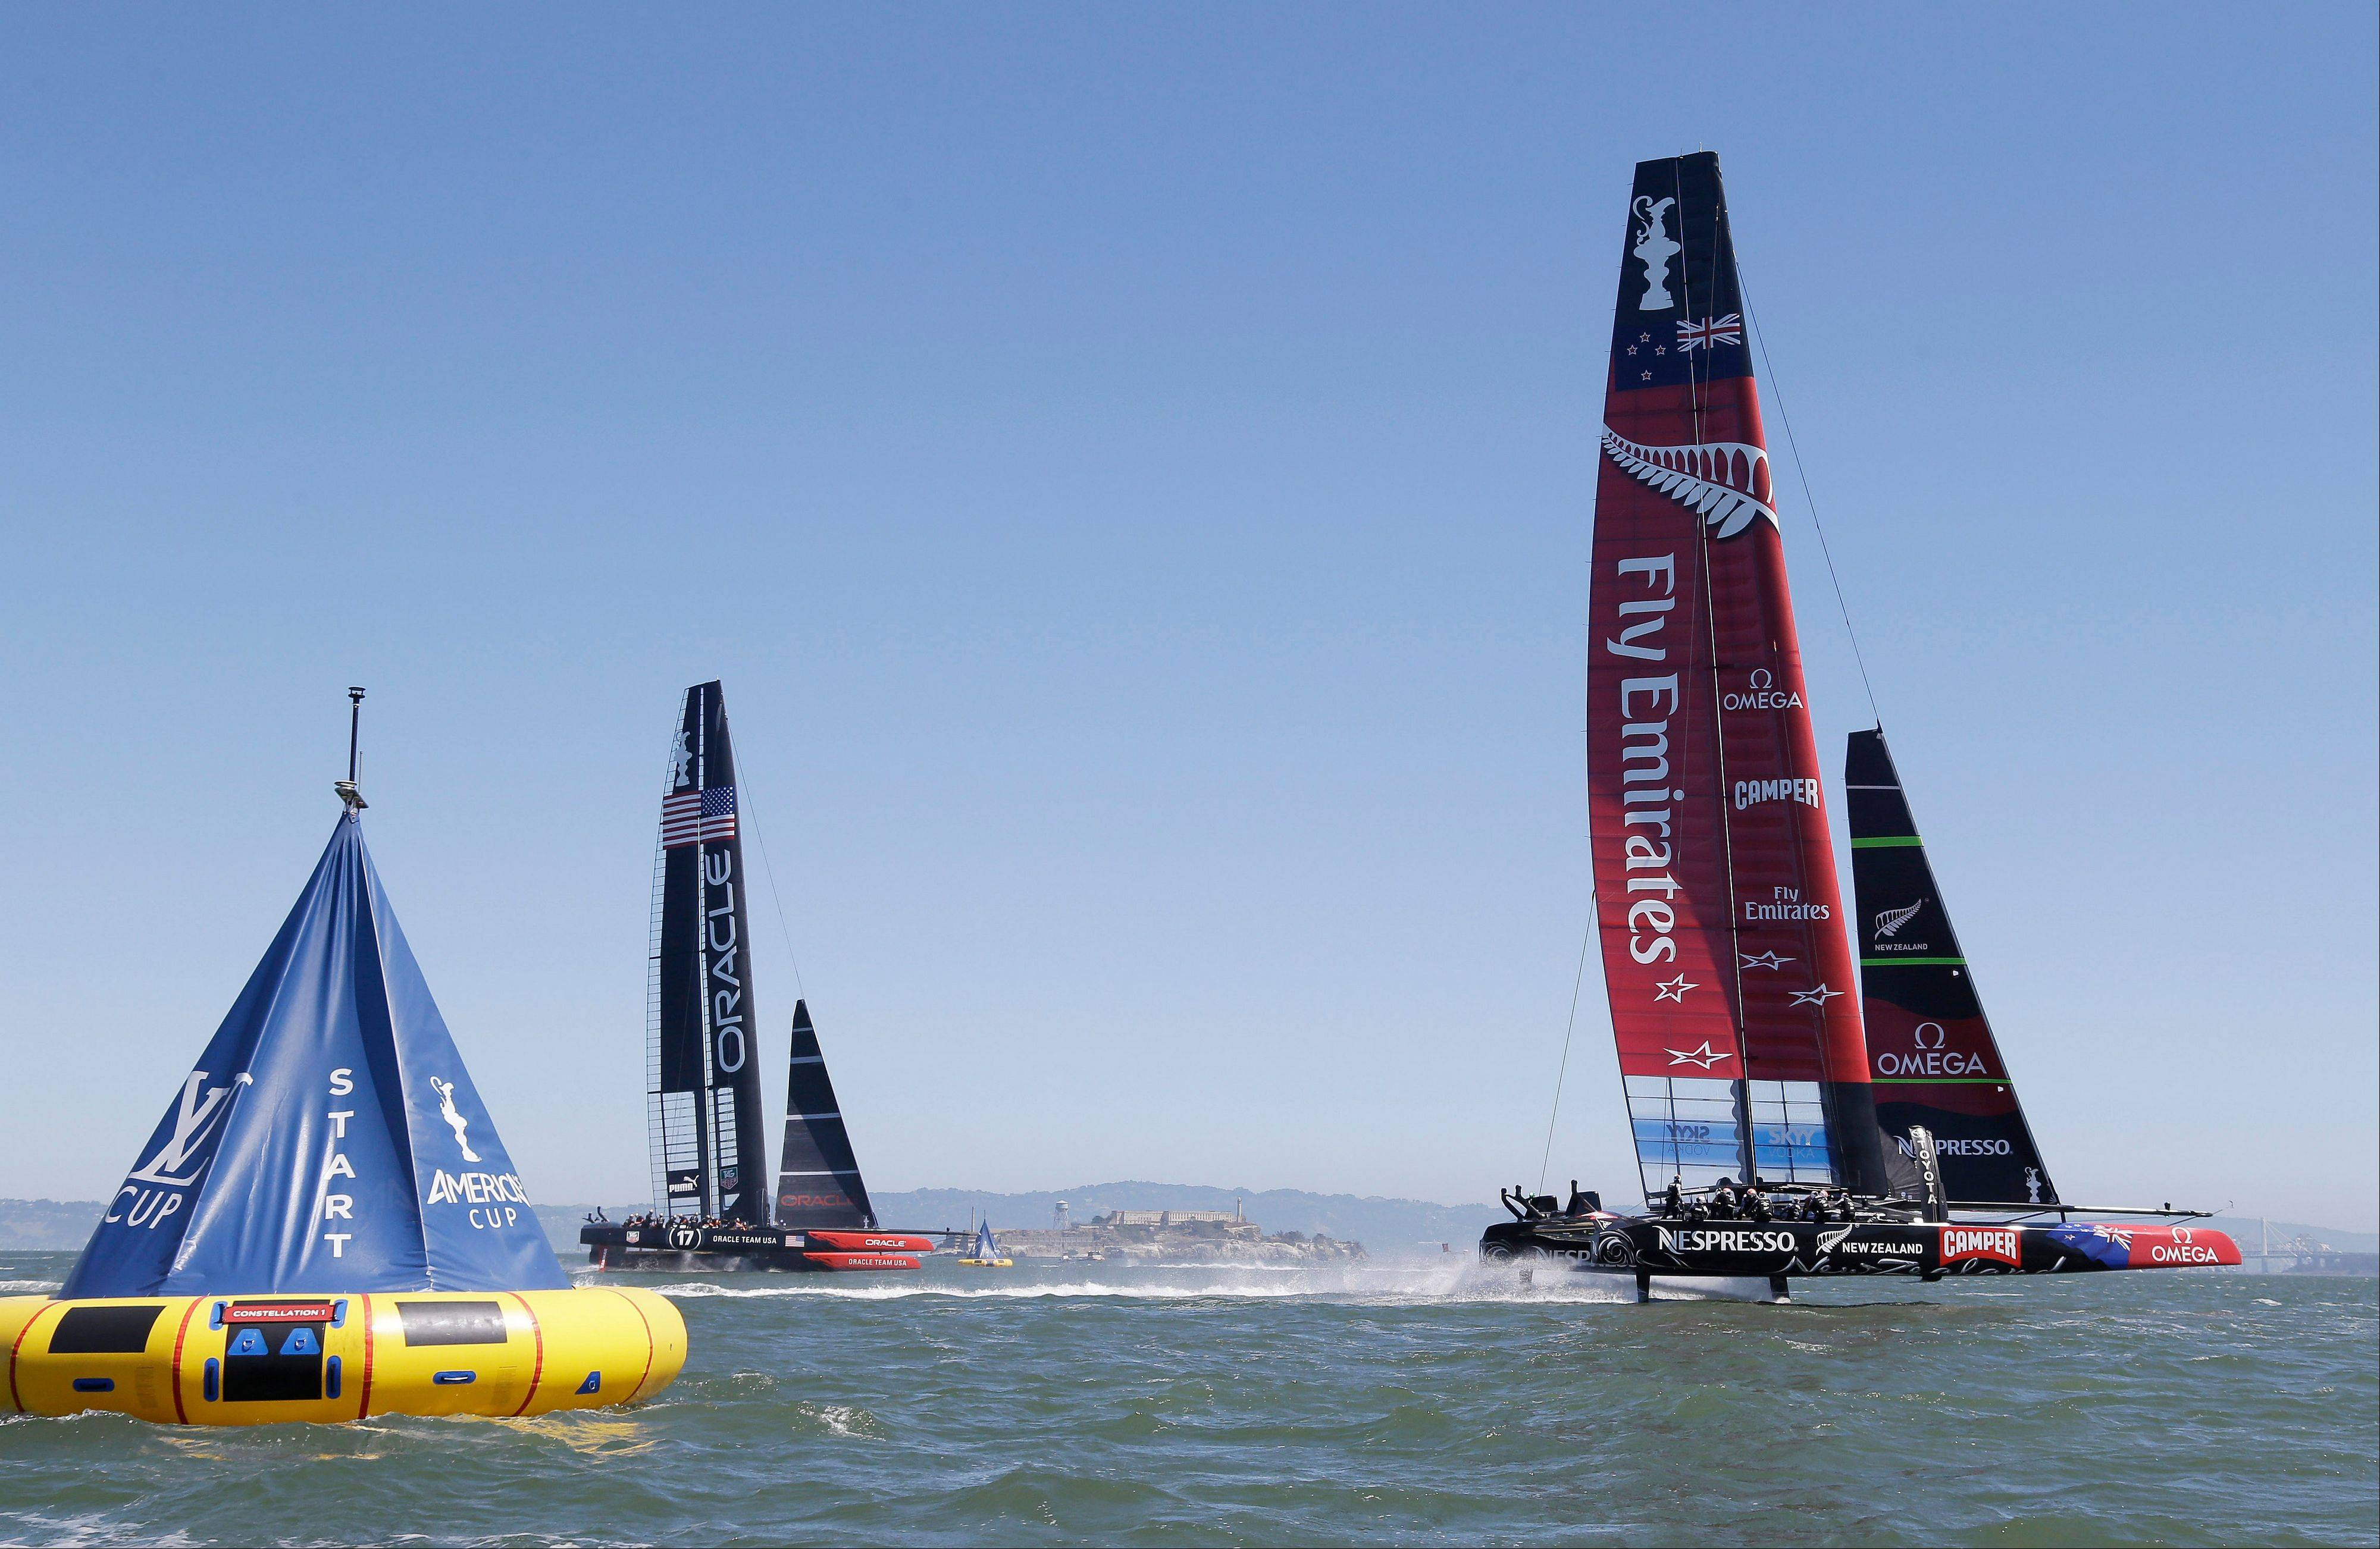 Emirates Team New Zealand, right, and Oracle Team USA, left, make their way past the start line while training for the America's Cup sailing event on Thursday, Sept. 5, 2013, in San Francisco. The first races between Oracle Team USA and Emirates Team New Zealand are on Saturday. Alcatraz Island is visible in the distance.